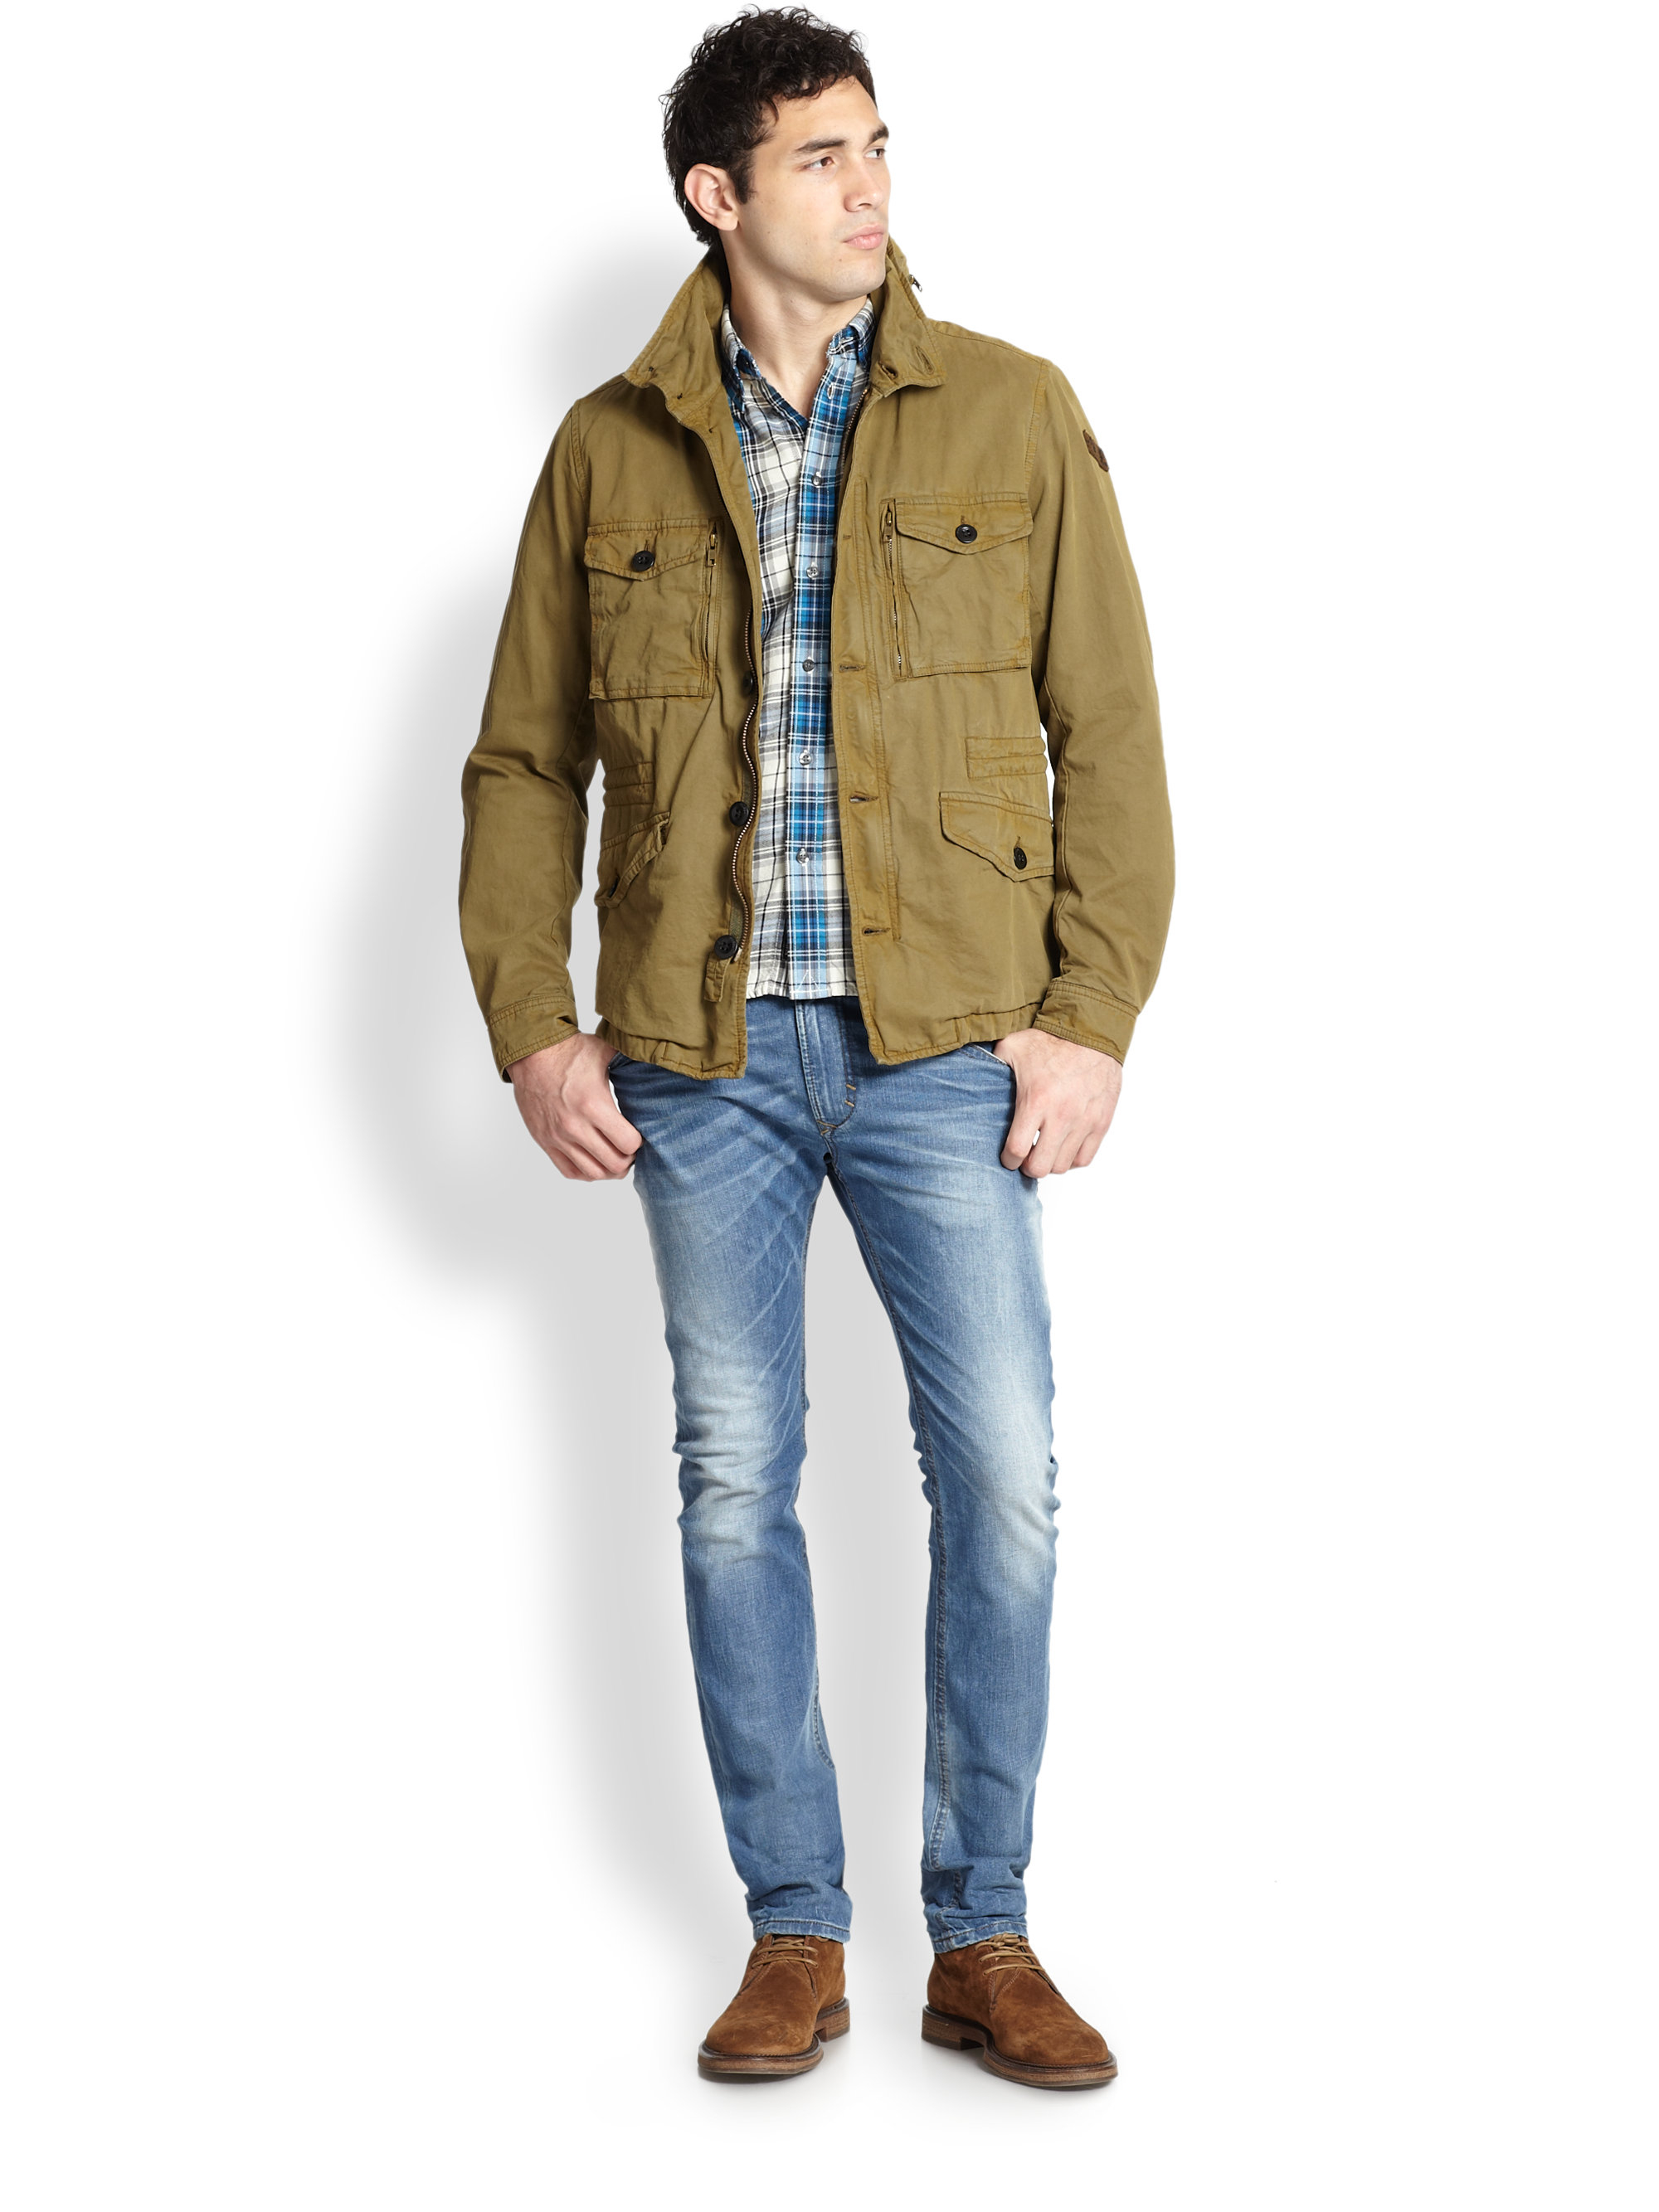 a3b33fb96dfb3 Lyst - DIESEL Twill Military Jacket in Green for Men